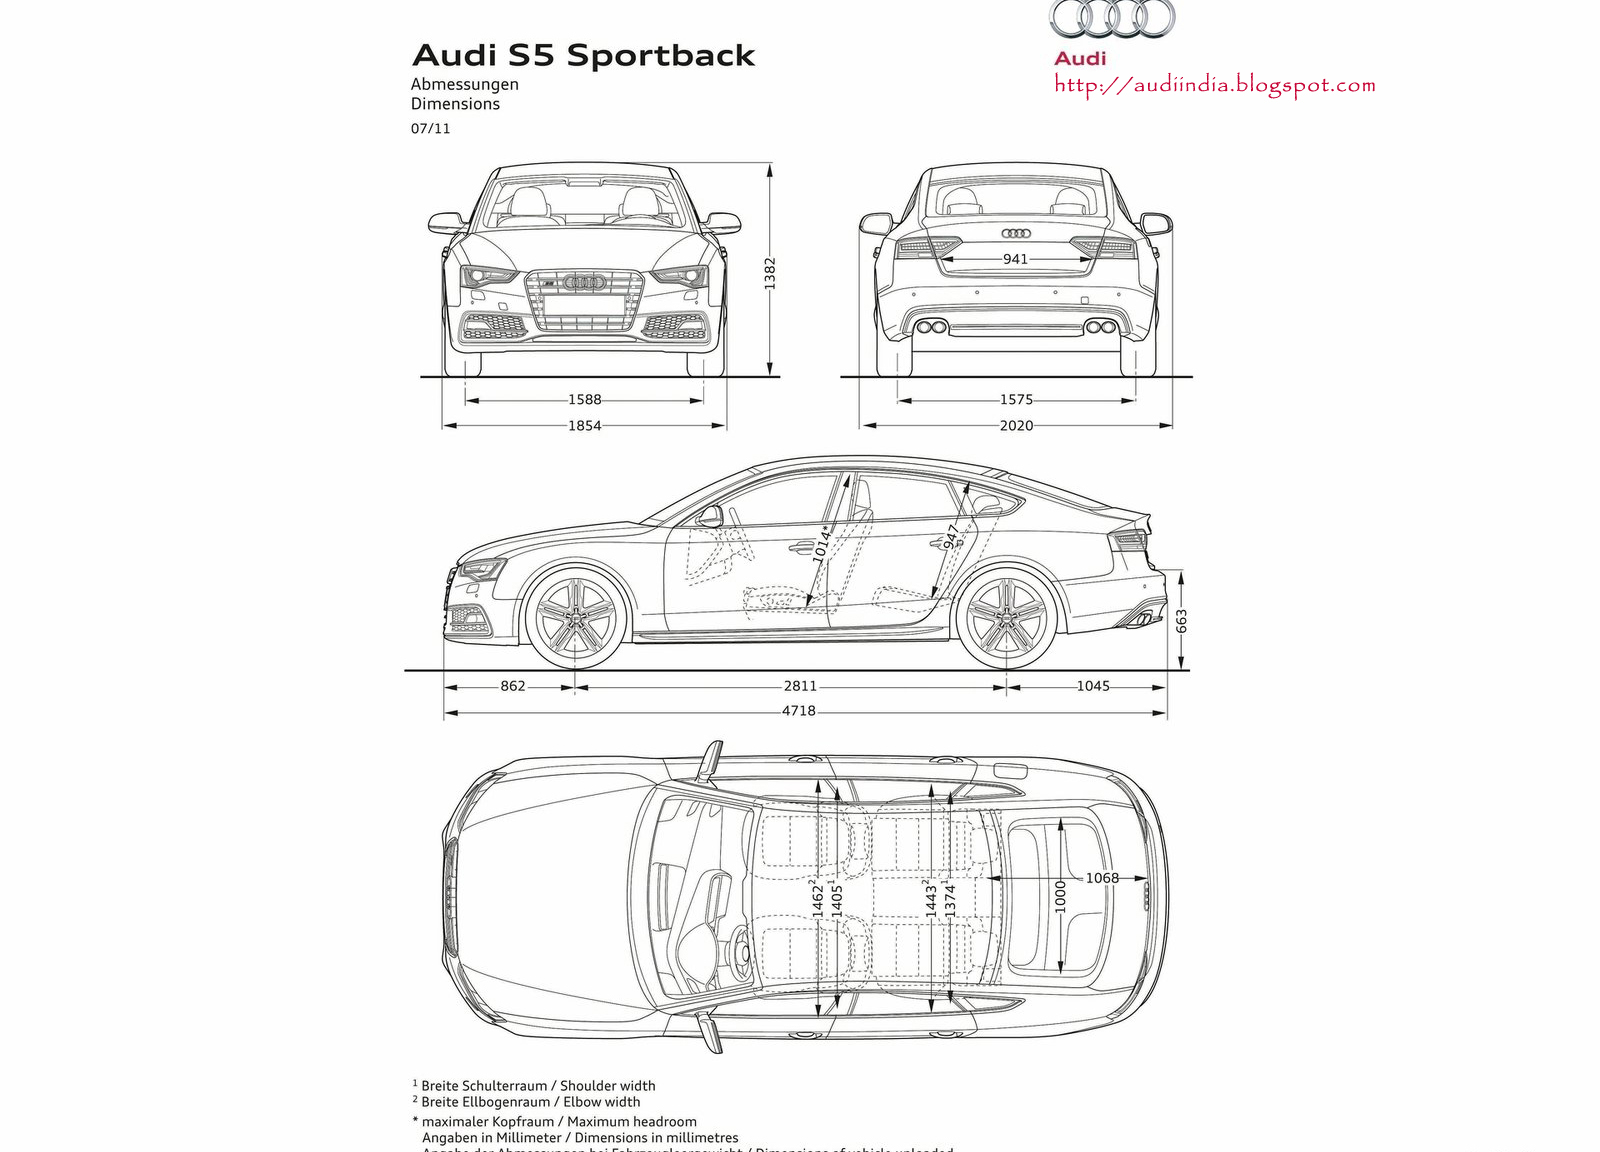 2012 01 01 archive furthermore Chain drive furthermore A4 Saloon additionally GT2871R Turbo Kit 2 0TFSI VW GTI Jetta Audi A3 400HP together with Audi Engine Diagram. on audi 4 0 tfsi engine